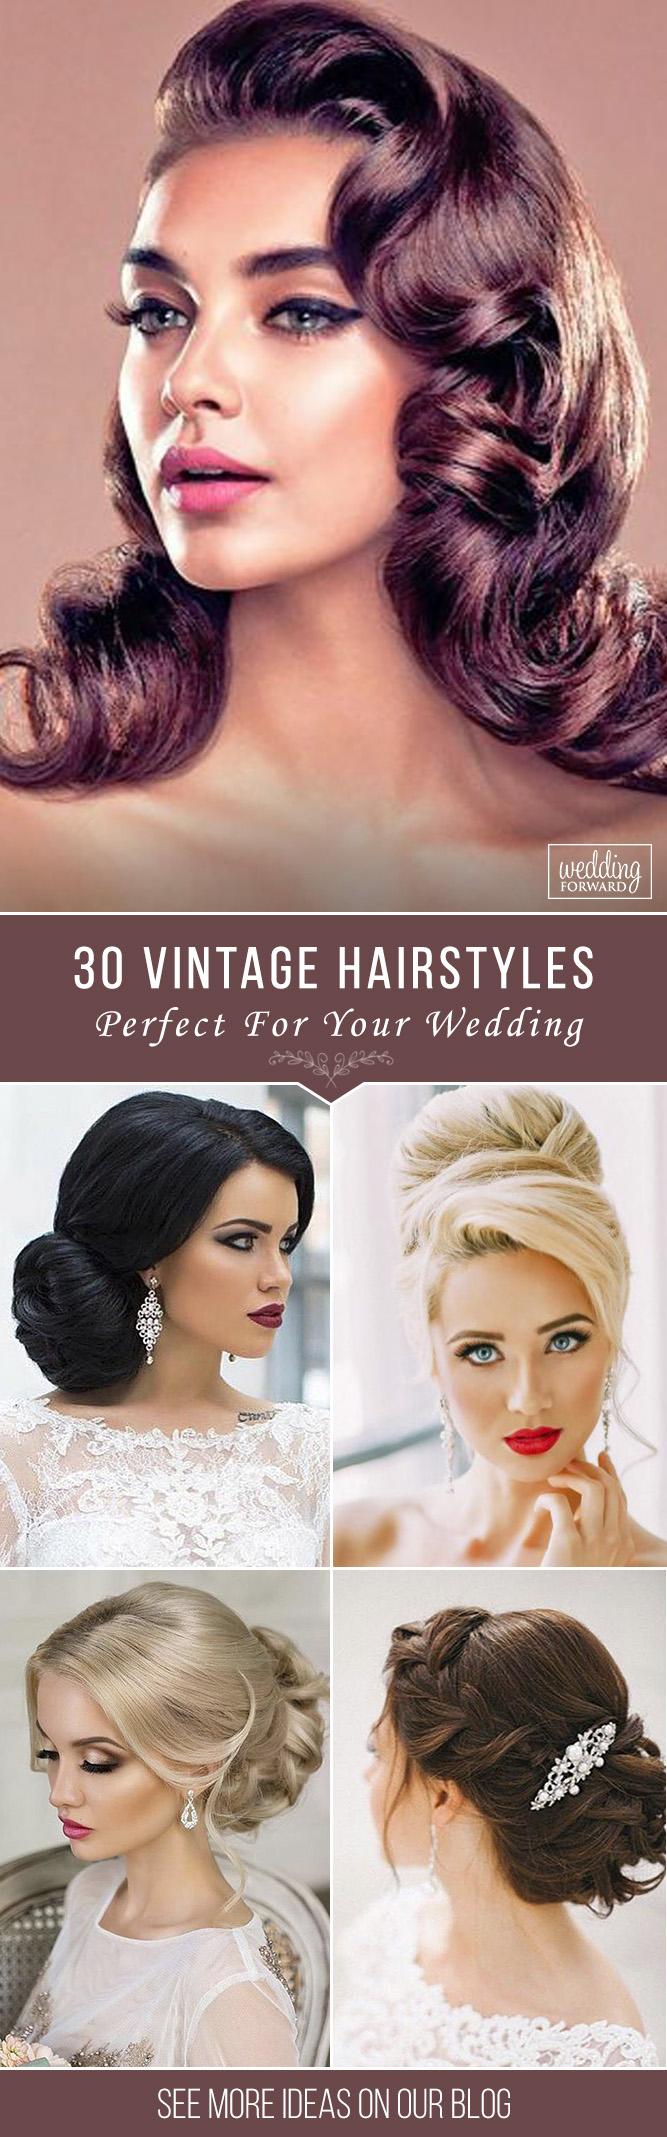 36 Always Feminine Vintage Wedding Hairstyles | Wedding Forward